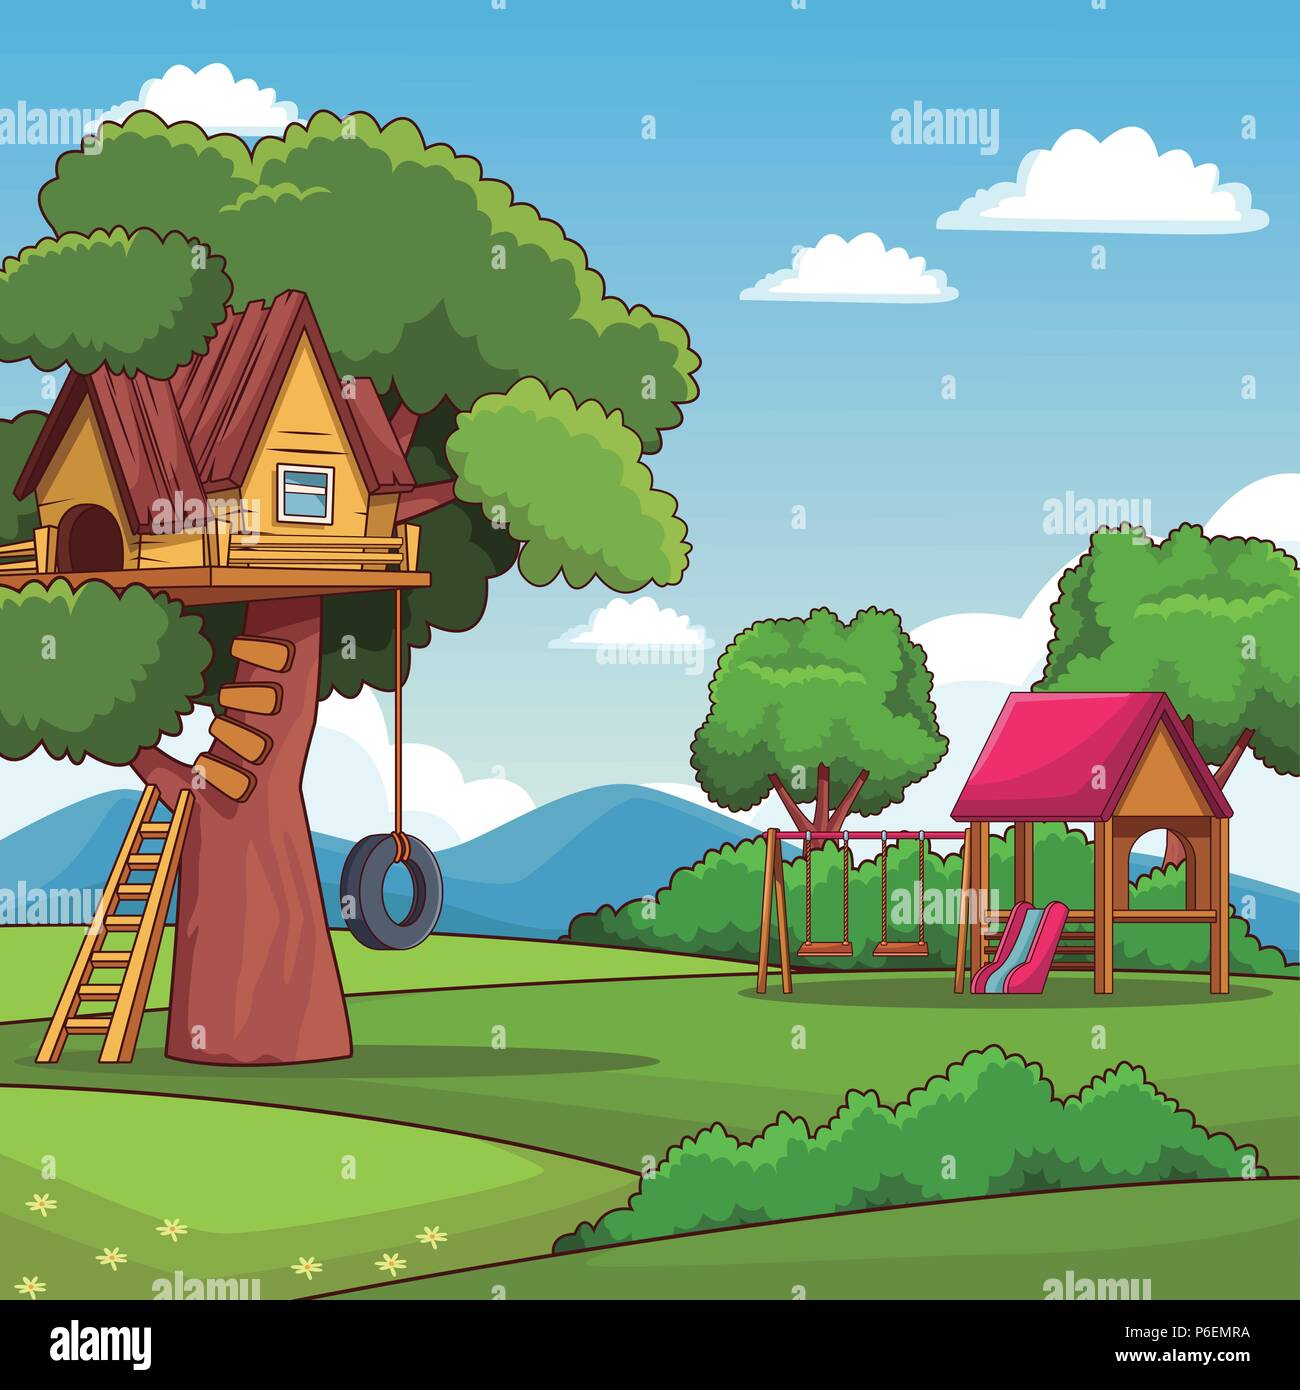 Park With Tree House And Playhouse Scenery Cartoon Vector Illustration Graphic Design Stock Vector Image Art Alamy House, south park cartoon, watch steven universe, family cartoon, watch samurai jack, arthur and the haunted tree house kisscartoon. https www alamy com park with tree house and playhouse scenery cartoon vector illustration graphic design image210536014 html